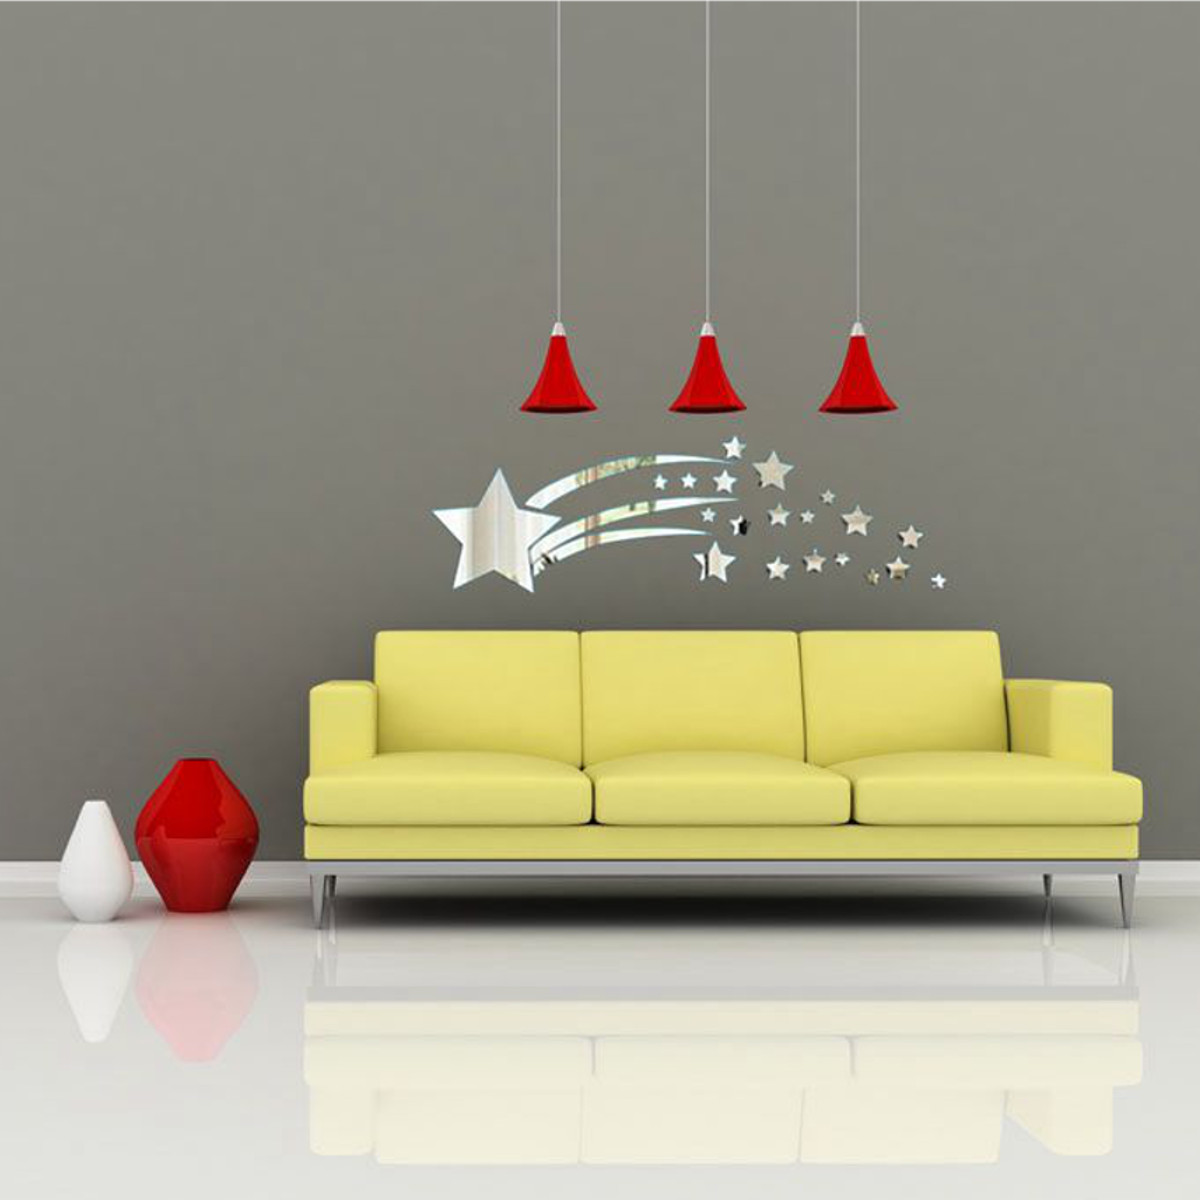 Comfortable 3d Art Wall Contemporary - The Wall Art Decorations ...